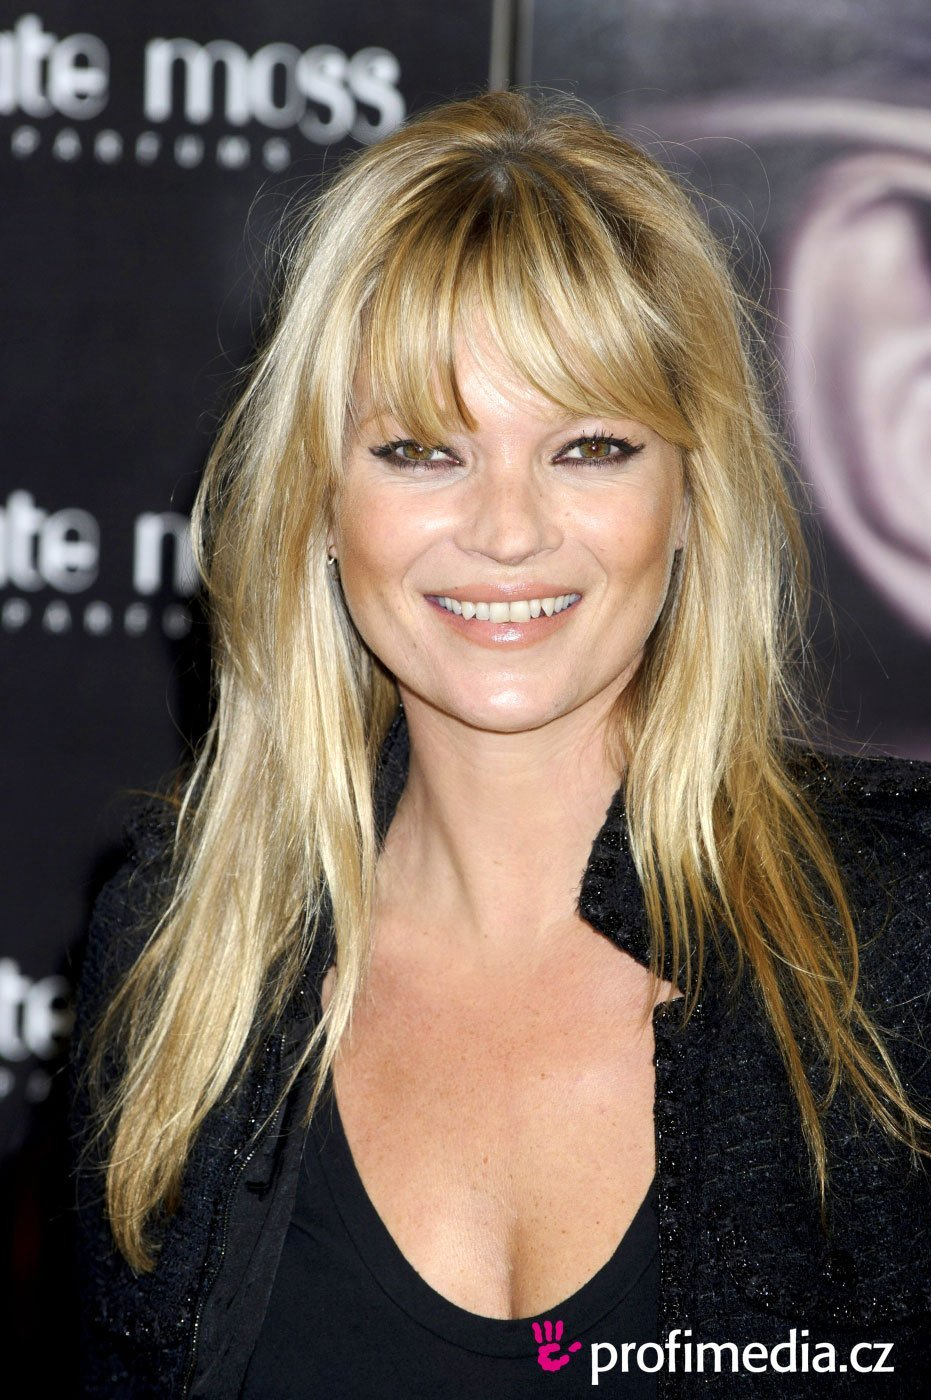 The Best Kate Moss Hairstyle Easyhairstyler Pictures